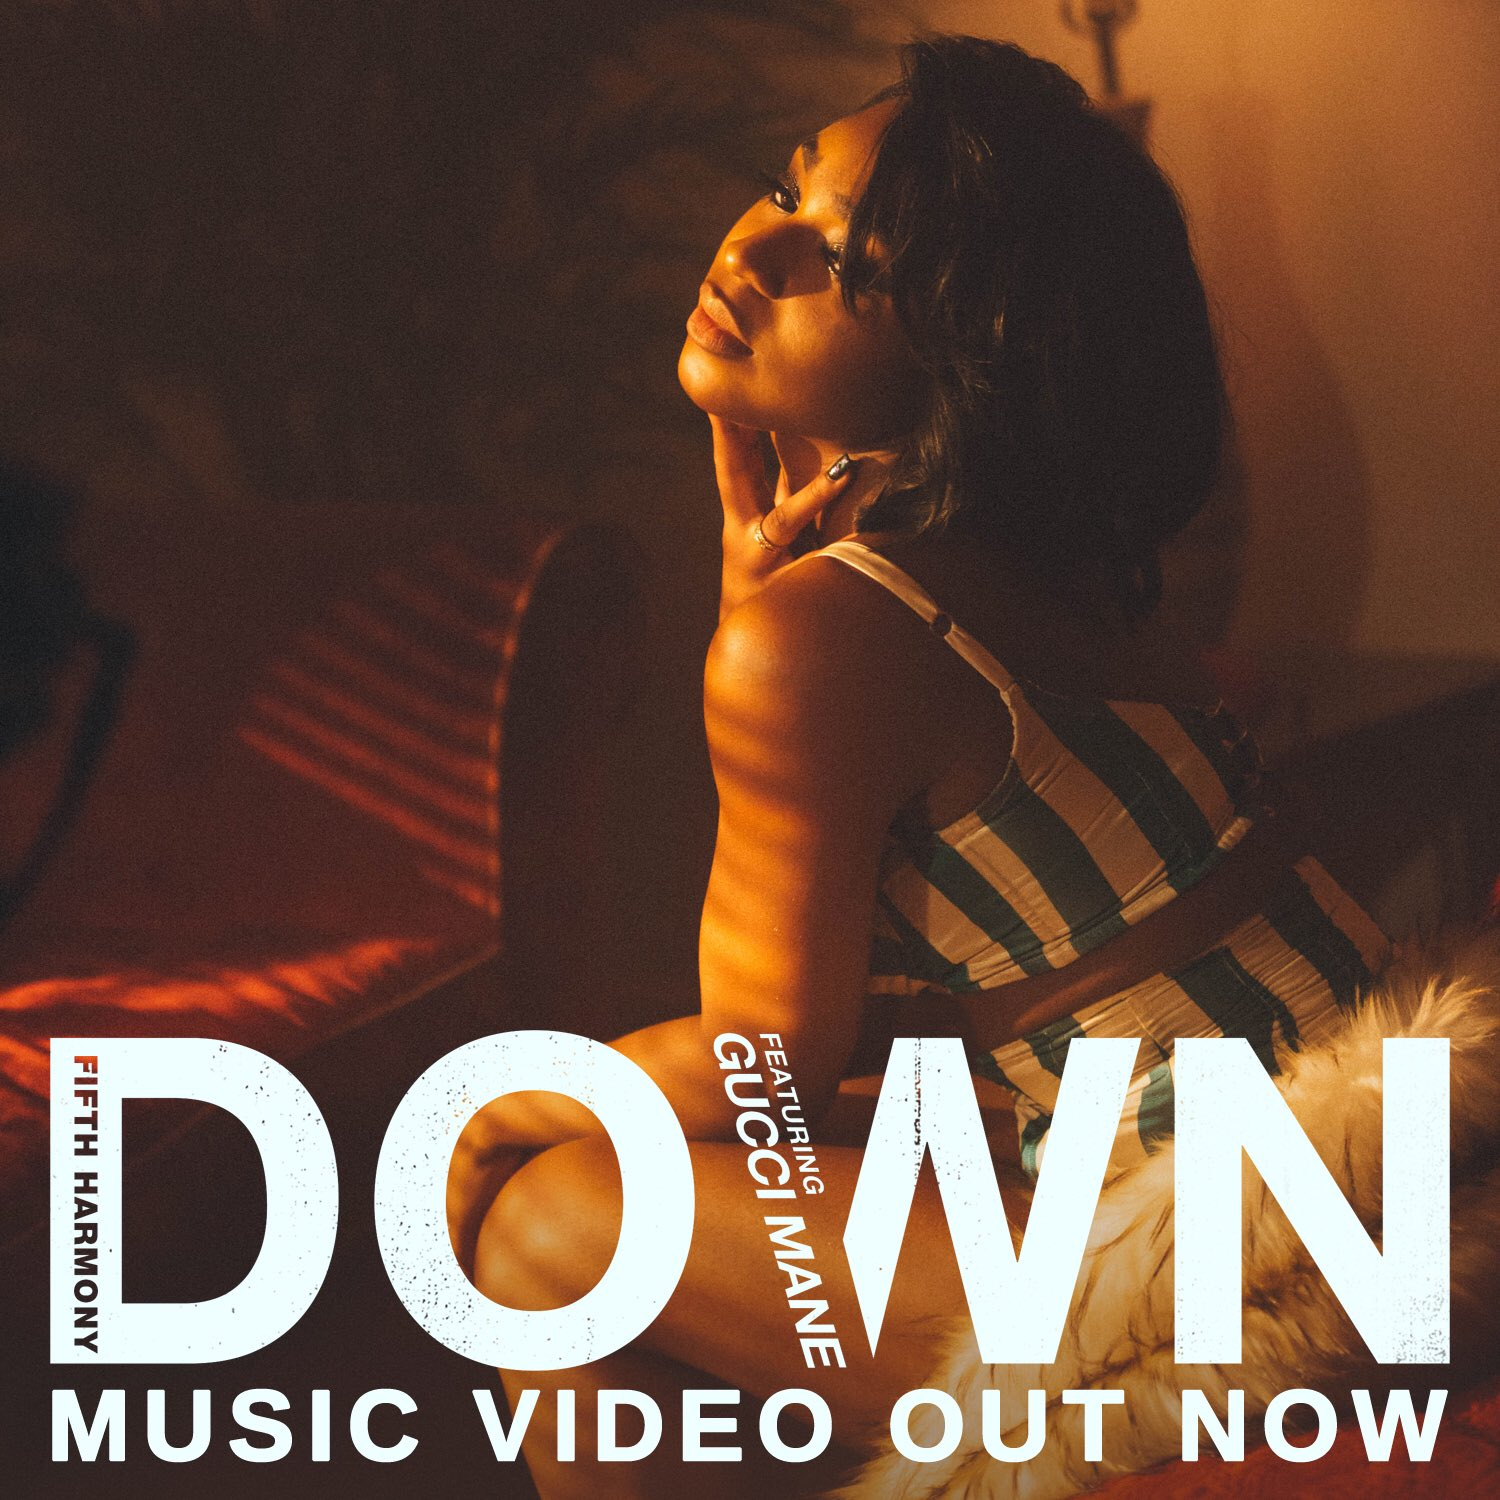 #DownMusicVideo OUT NOW @NormaniKordei ⬇️ https://t.co/d8Lrtmz88H